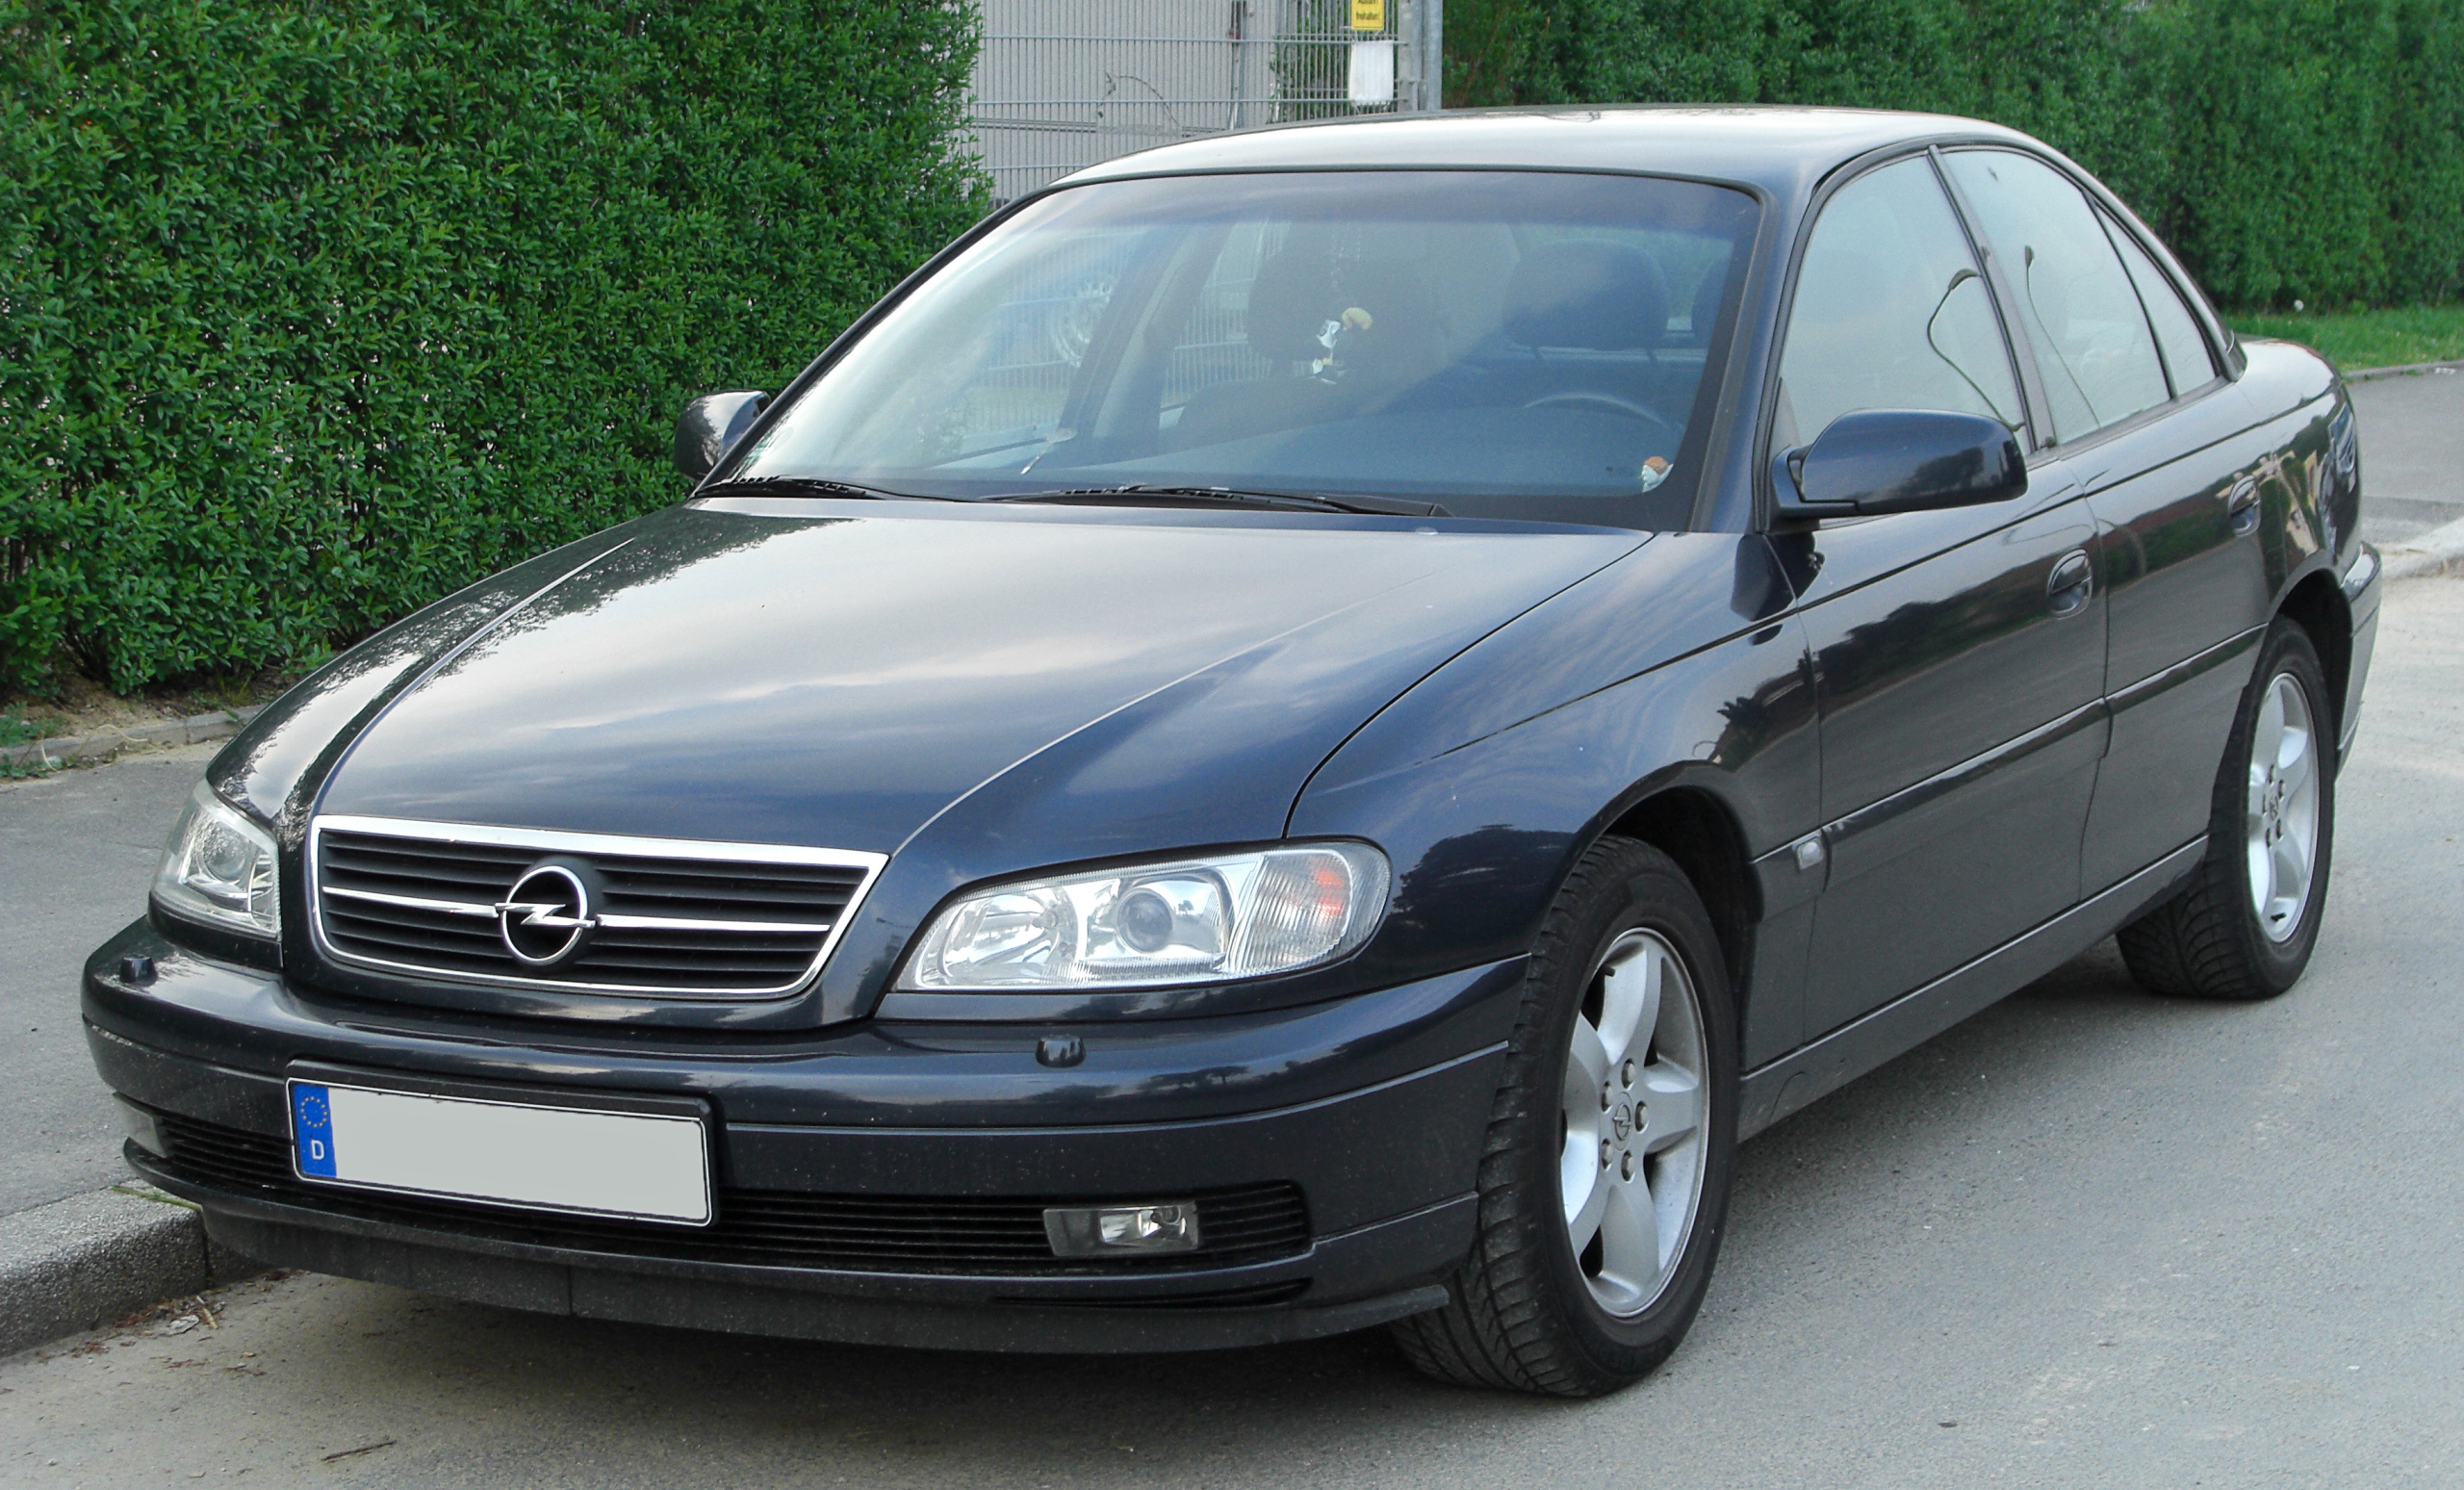 file opel omega ii facelift front wikimedia commons. Black Bedroom Furniture Sets. Home Design Ideas